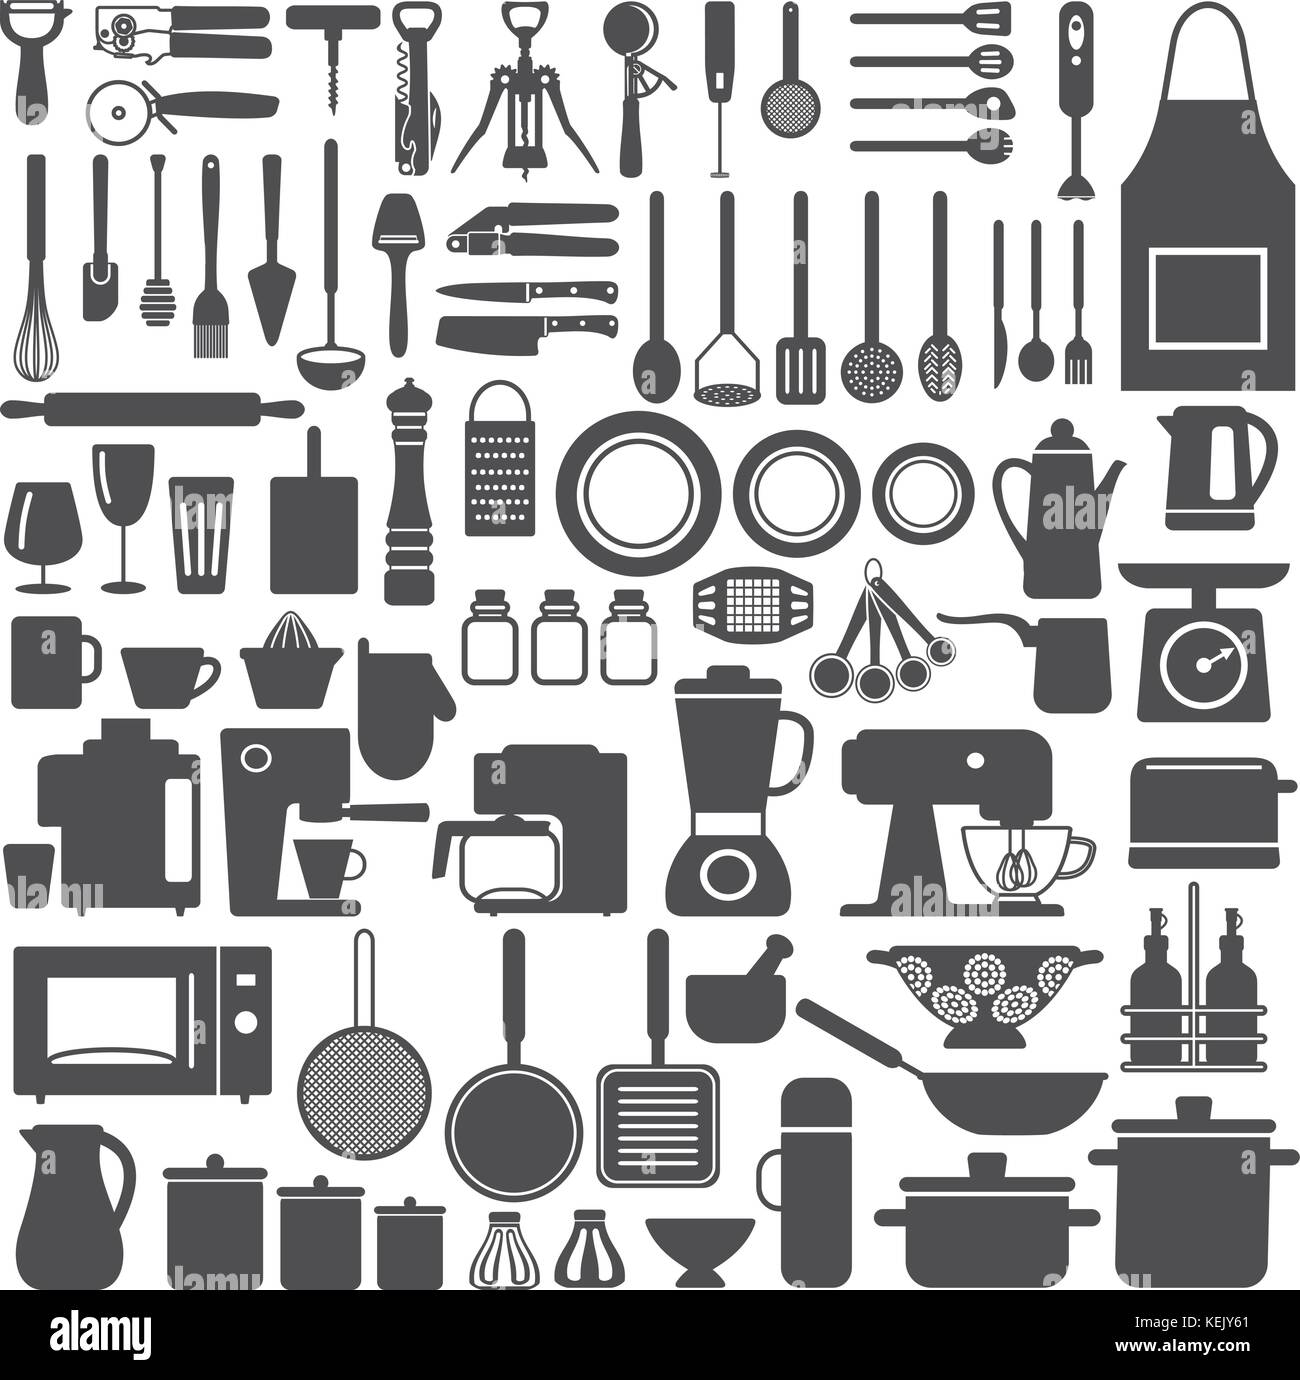 Various Kitchen Utensils And Appliances Vector Silhouette